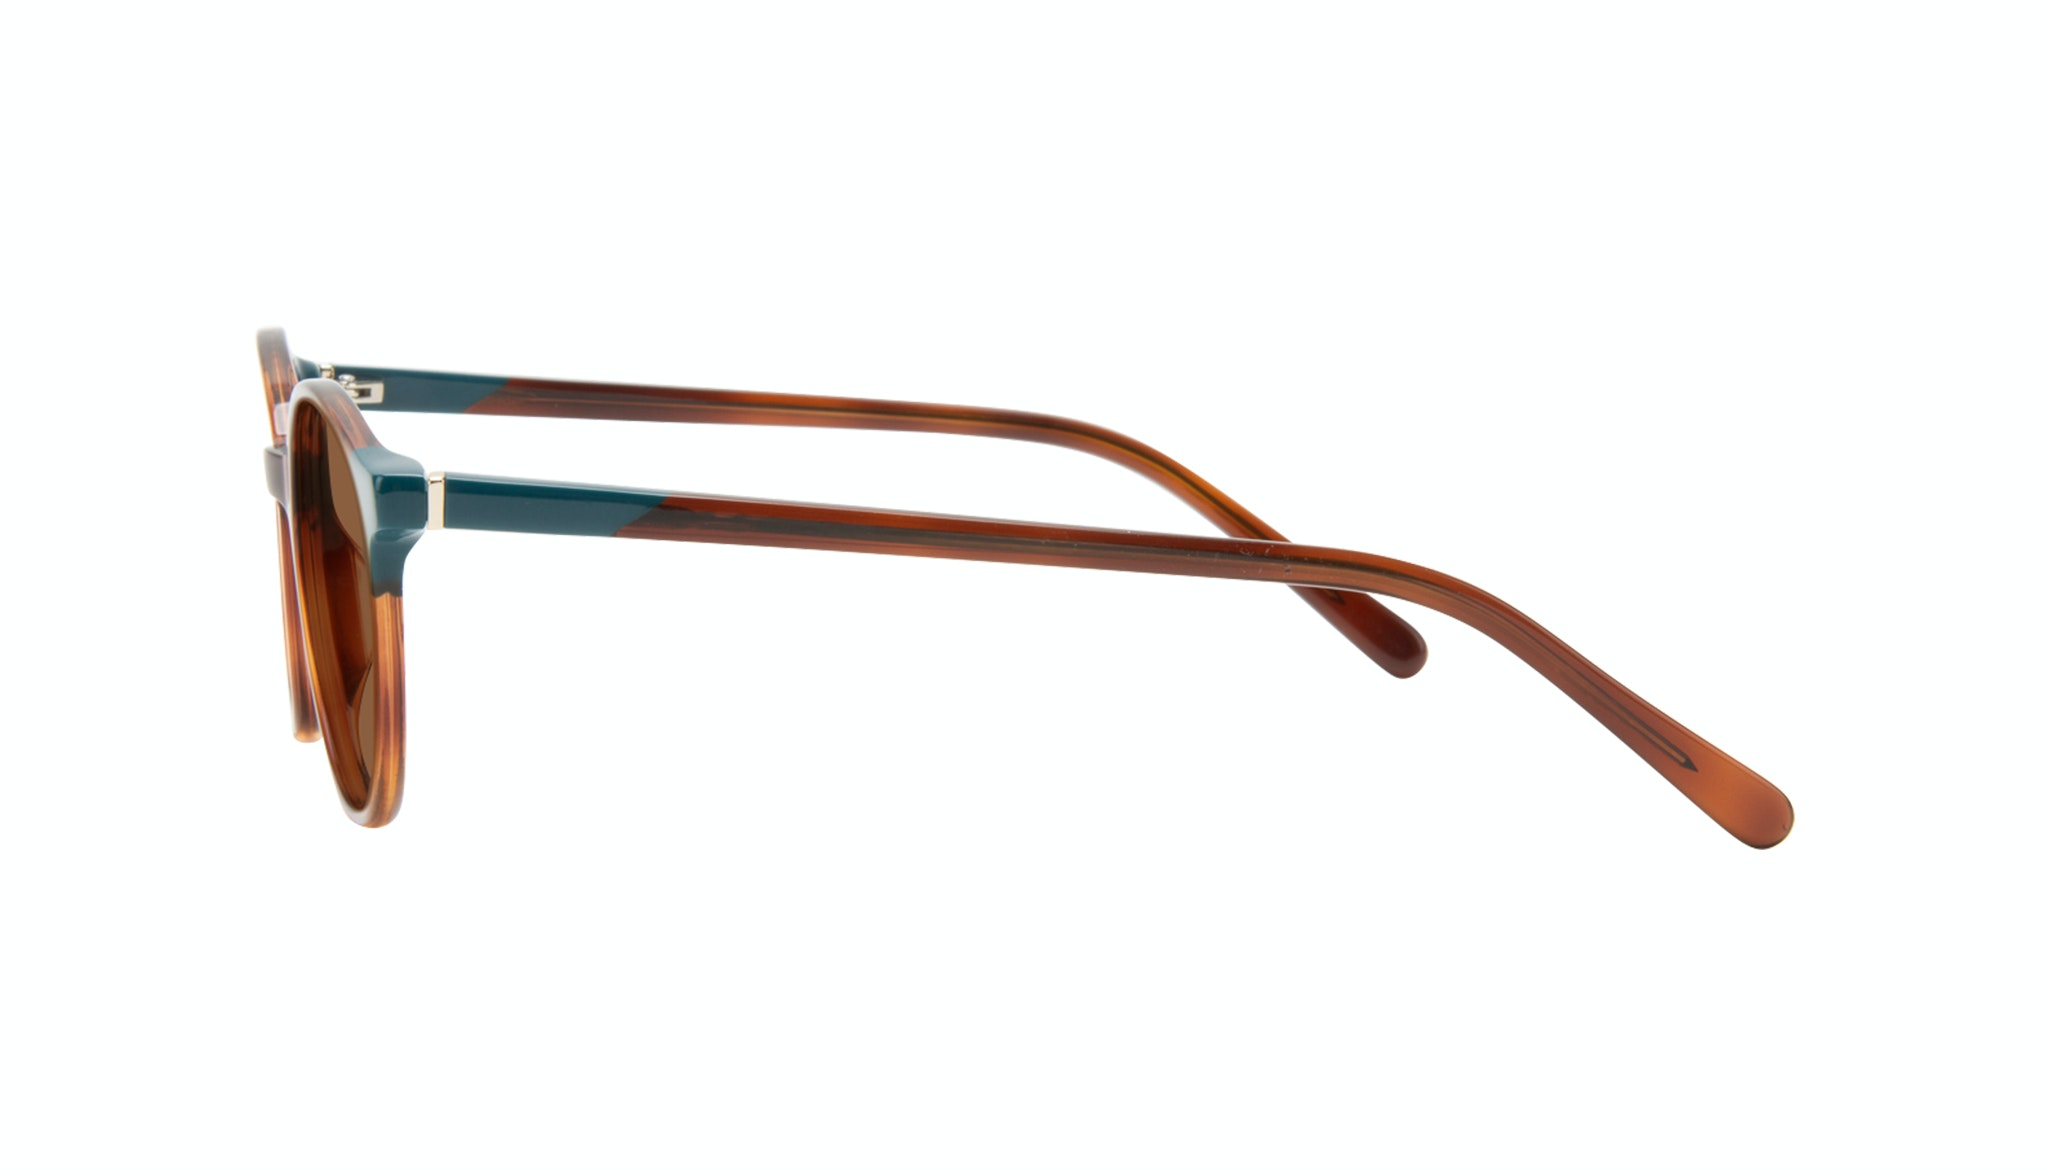 Affordable Fashion Glasses Round Sunglasses Women Vivid Teal Tort Side